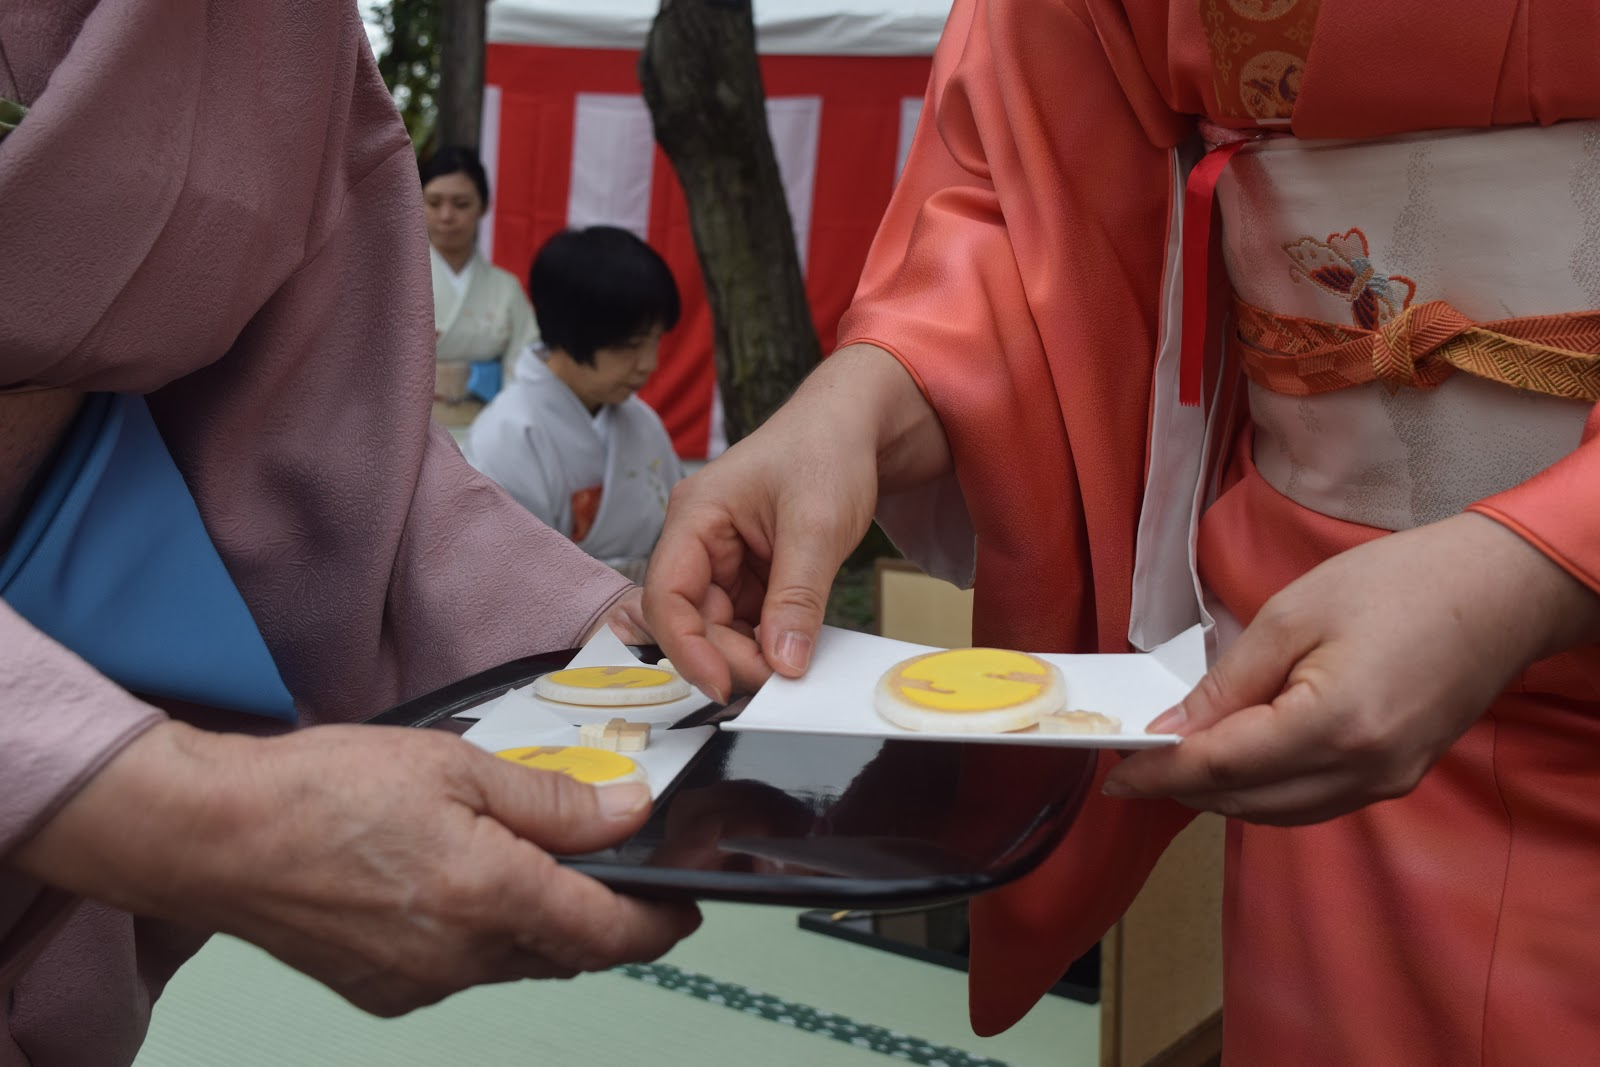 A picture of people exchanging or holding out confectionery or savory snacks